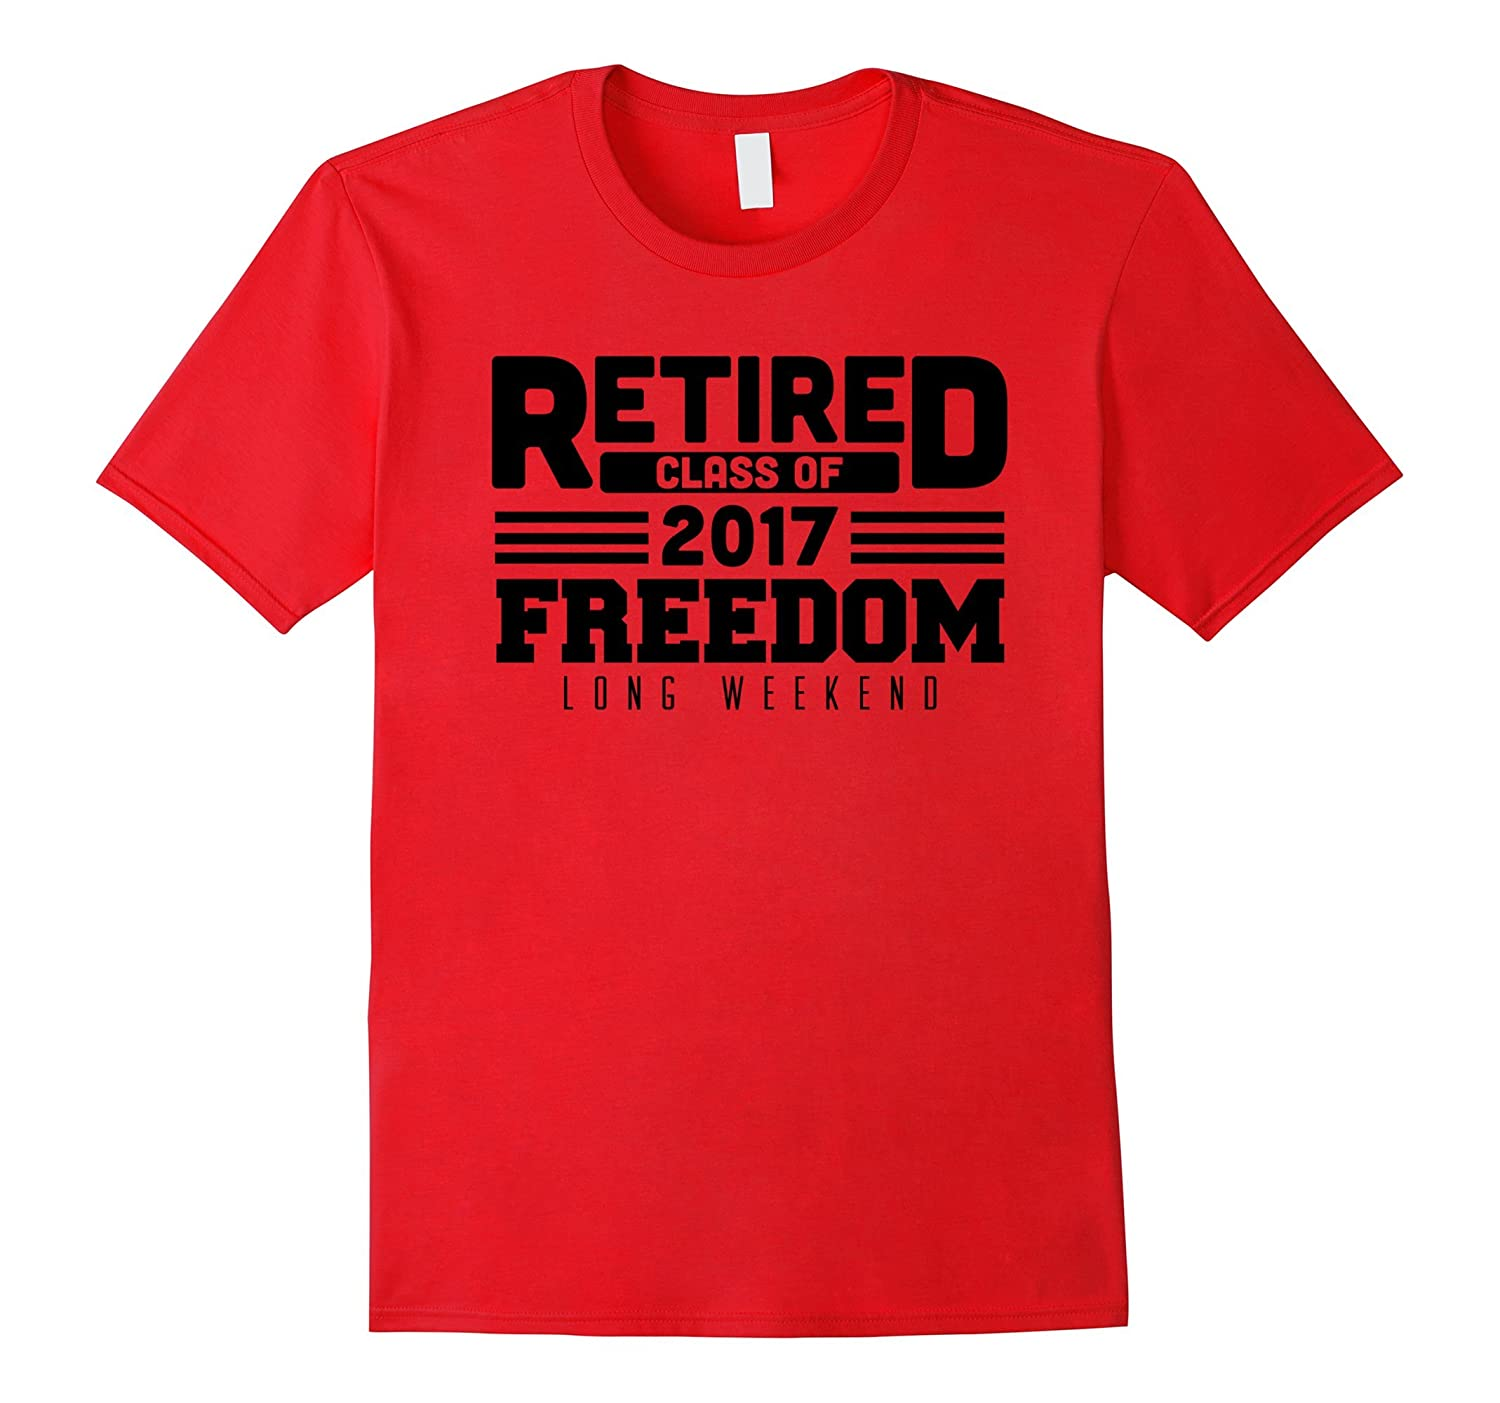 Retired Class Of 2017 Freedom Long Weekend  For Retirerment-RT